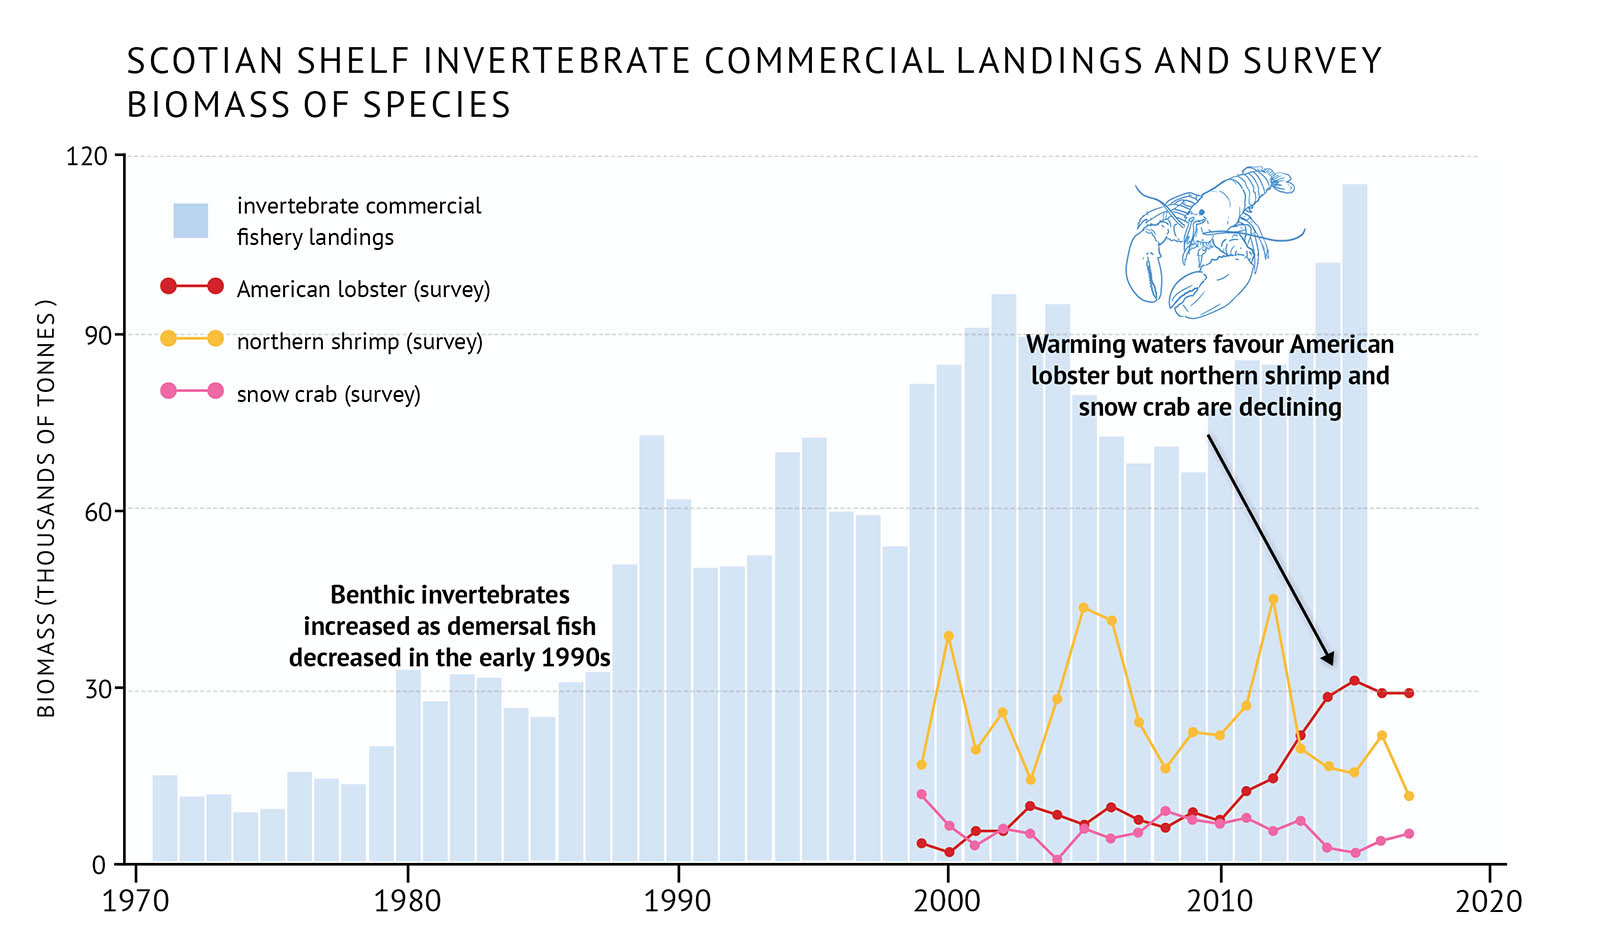 "Figure 30: Scotian Shelf commercial landings for benthic invertebrate species and survey biomass for individual benthic invertebrate species. Commercial landings show a long-term increasing trend. Data collection by research survey began in 1999. A bar graph illustrates commercial landings for benthic invertebrates combined with line graphs illustrating the survey biomass for individual invertebrate species on the Scotian Shelf. Text above the graph says ""Scotian Shelf Invertebrate Commercial Landings and Survey Biomass of Species"". The vertical axis on the left shows the biomass in units of thousands of tonnes from 0 to 120 in increments of 30. The bottom horizontal axis shows the years between 1970 and 2020 in 10 year increments. The commercial landings are represented by light blue vertical bars which increase steadily with some fluctuations from approximately 15 thousand tonnes in the early 1970s to almost 120 thousand tonnes in the last year of data in 2015. The survey biomass of three invertebrates species are represented by different coloured lines on the same graph. The survey data starts in 1999 and ends in 2017. A legend appears on the left. A red data line illustrates the survey biomass trend for American lobster. A yellow data line illustrates the survey biomass trend for northern shrimp. A pink data line illustrates the survey biomass trend for snow crab. Northern shrimp biomass is higher than the other species on the graph. It fluctuates between approximately 15 thousand tonnes to 40 thousand tonnes, declining in recent years. The American lobster biomass fluctuates around 10 thousand tonnes until 2010 and then increases rapidly to approximately 30 thousand tonnes by the mid-2010s. The trend of the snow crab biomass is below 10 thousand tonnes with small fluctuations, and is lower in the last years of data. A line of text is placed to the left-hand side of the graph just above the vertical bars. It says ""Benthic invertebrates increased as demersal fish decreased in the early 1990s"". A small, light blue outline-drawing of an American lobster is placed on the graph above the vertical bars to the right-hand side. Below the drawing there is text which states ""Warming waters favour American lobster but northern shrimp and snow crab are declining"". An arrow points down to the red line in the mid-2010s."